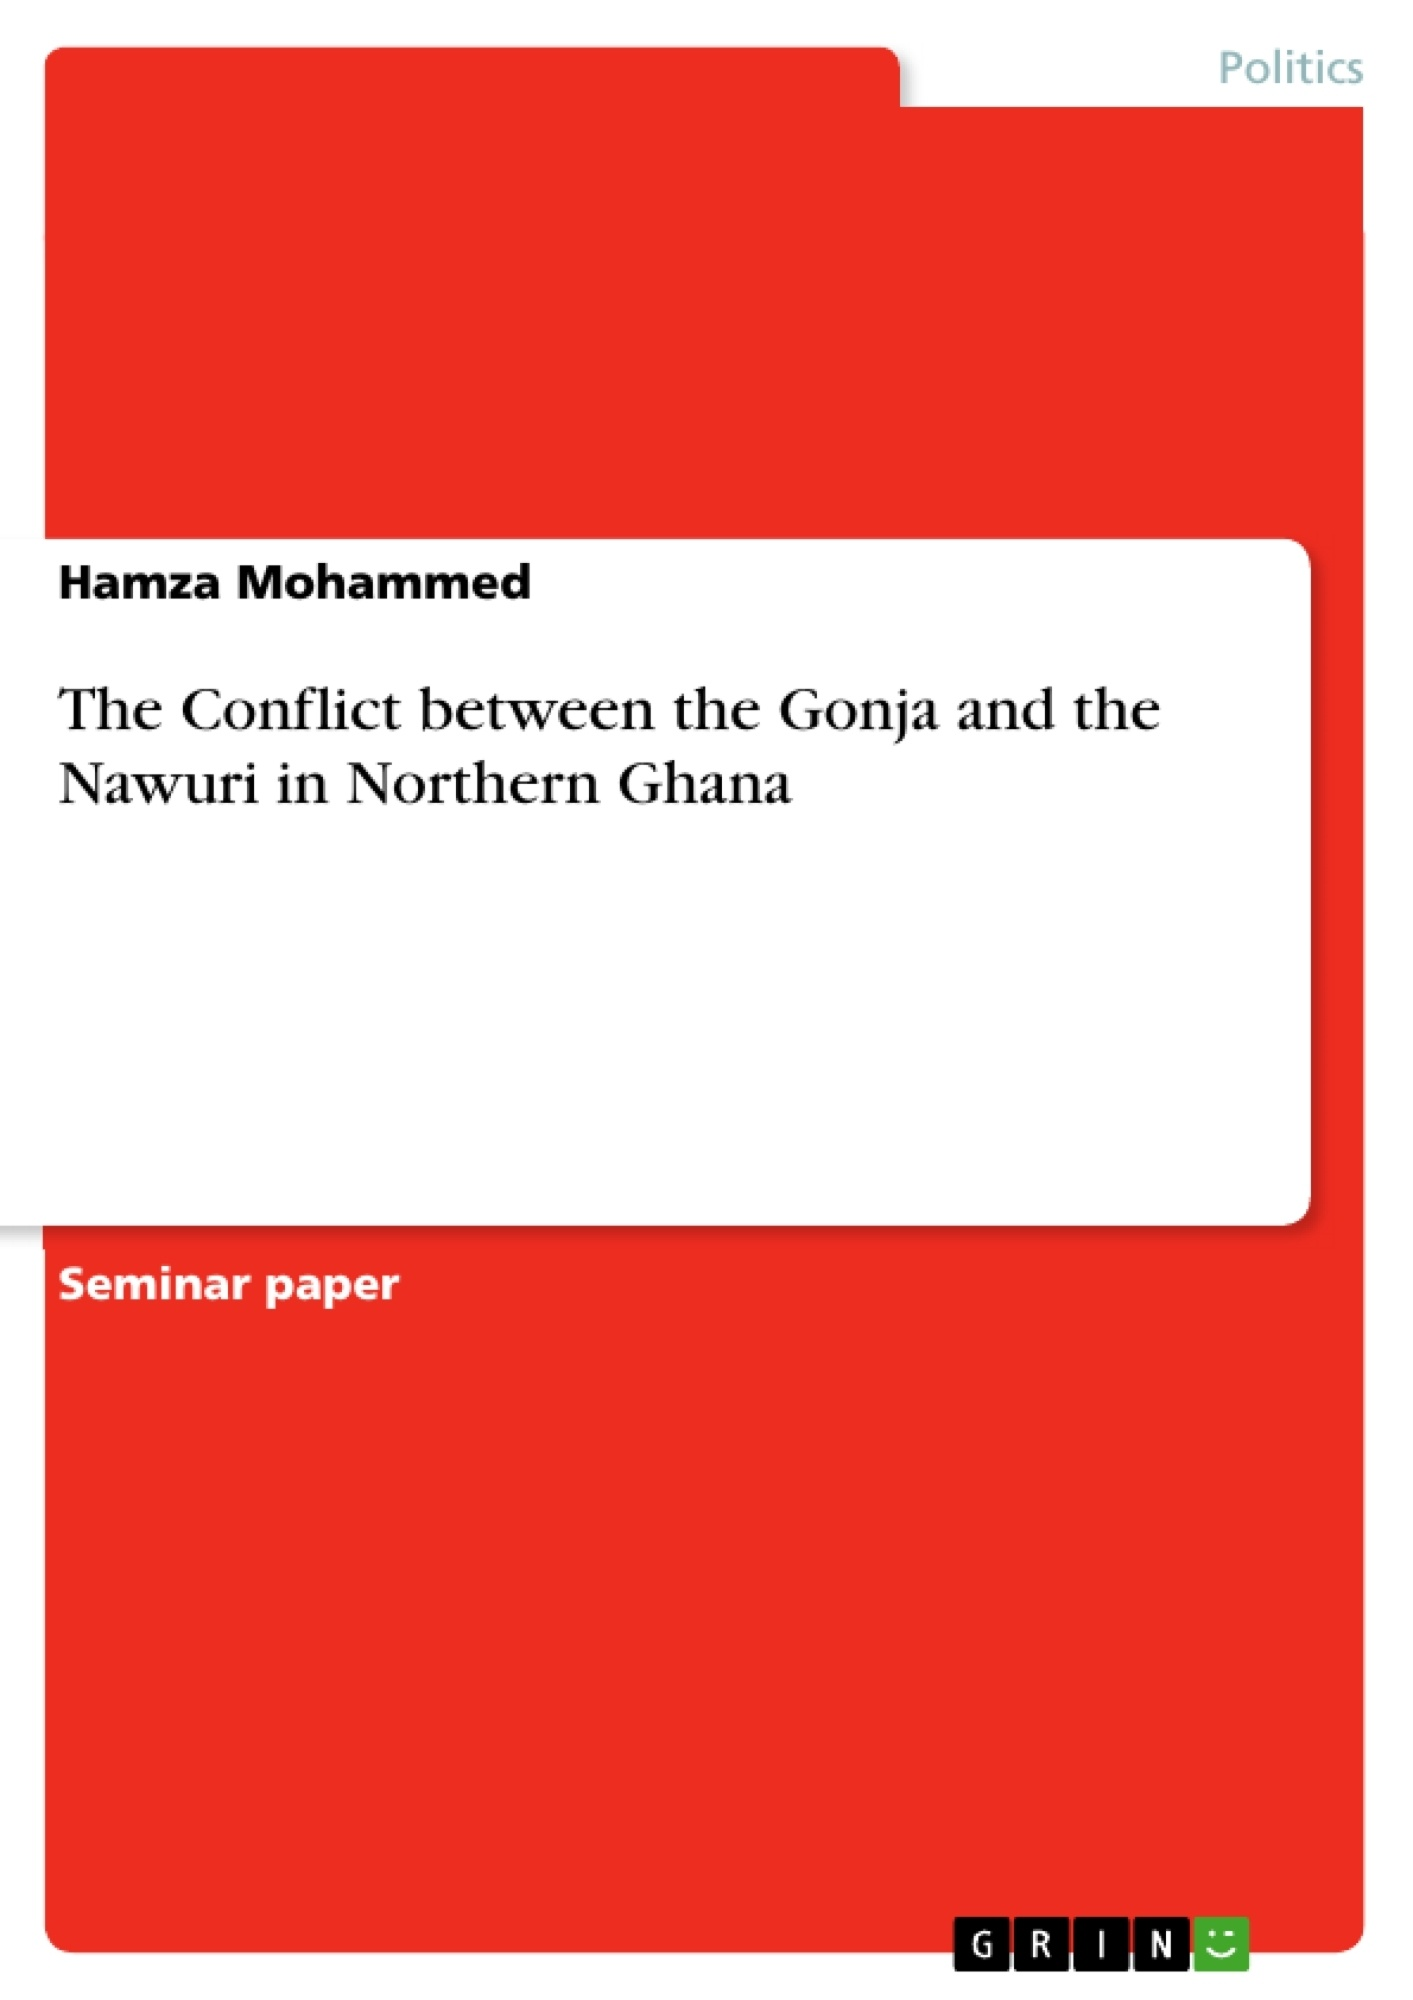 Title: The Conflict between the Gonja and the Nawuri in Northern Ghana